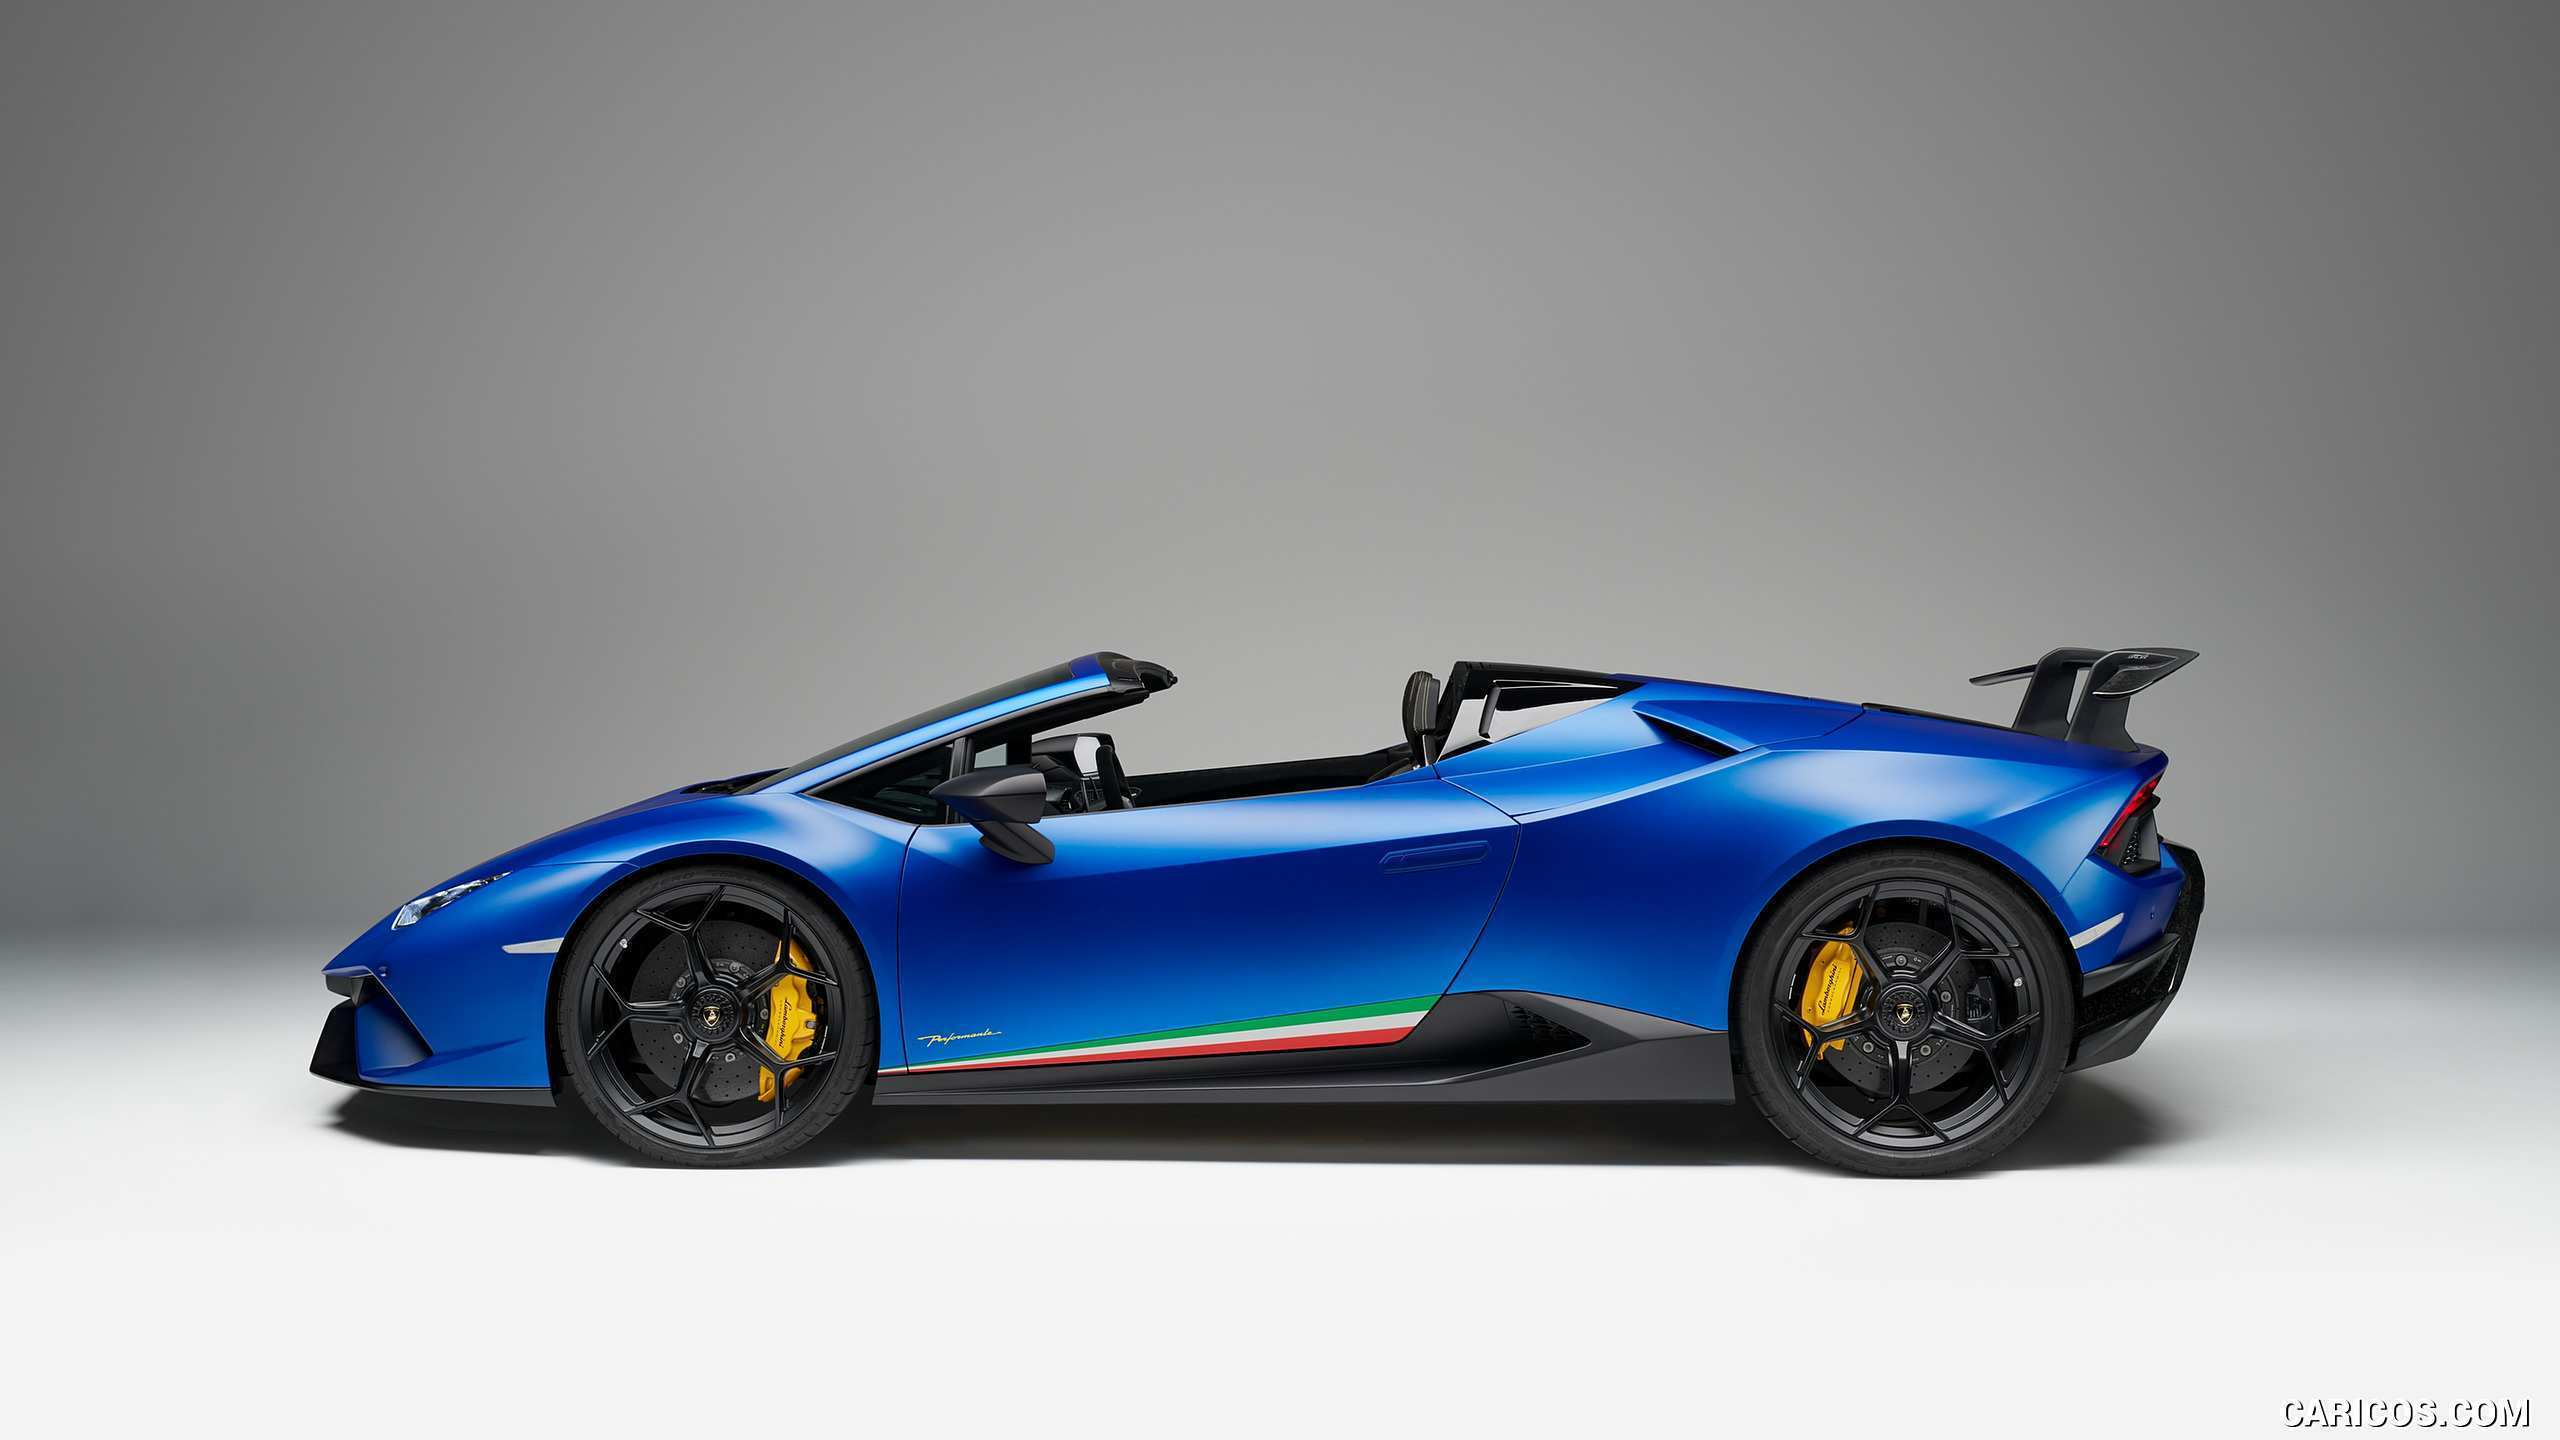 82 Gallery of 2019 Lamborghini Huracan Performante Configurations with 2019 Lamborghini Huracan Performante